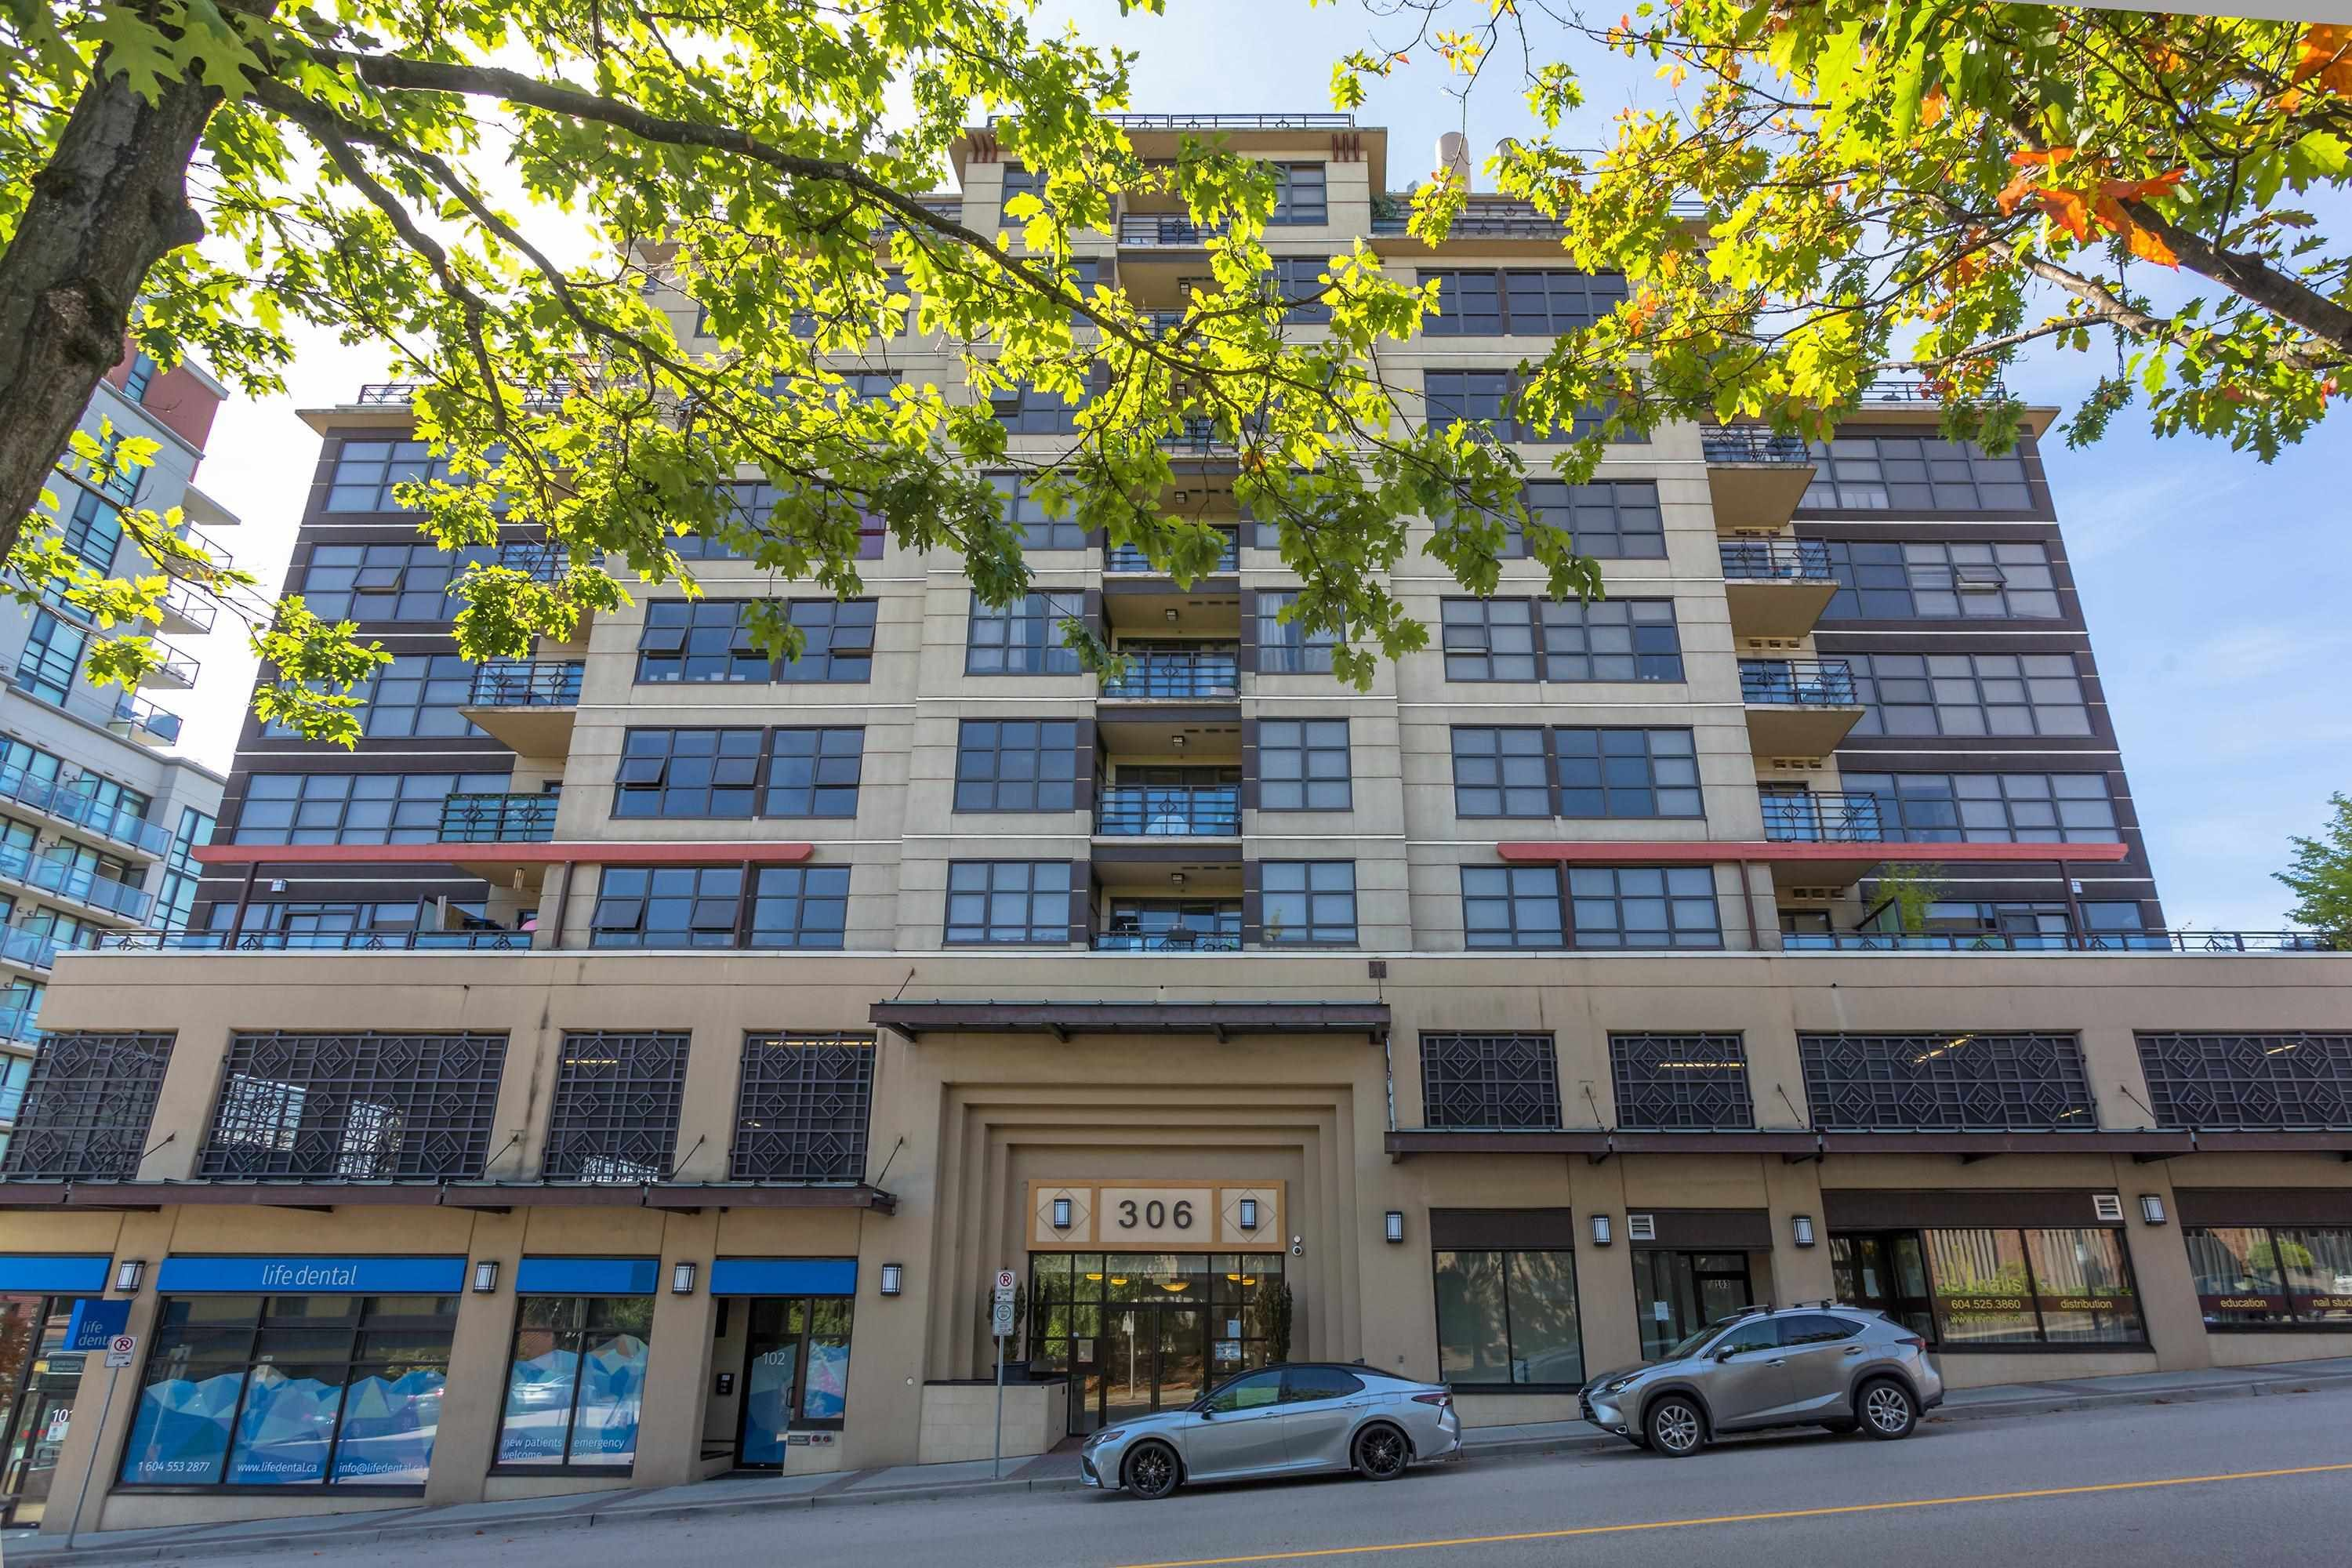 """Main Photo: 702 306 SIXTH Street in New Westminster: Uptown NW Condo for sale in """"AMADEO"""" : MLS®# R2618269"""